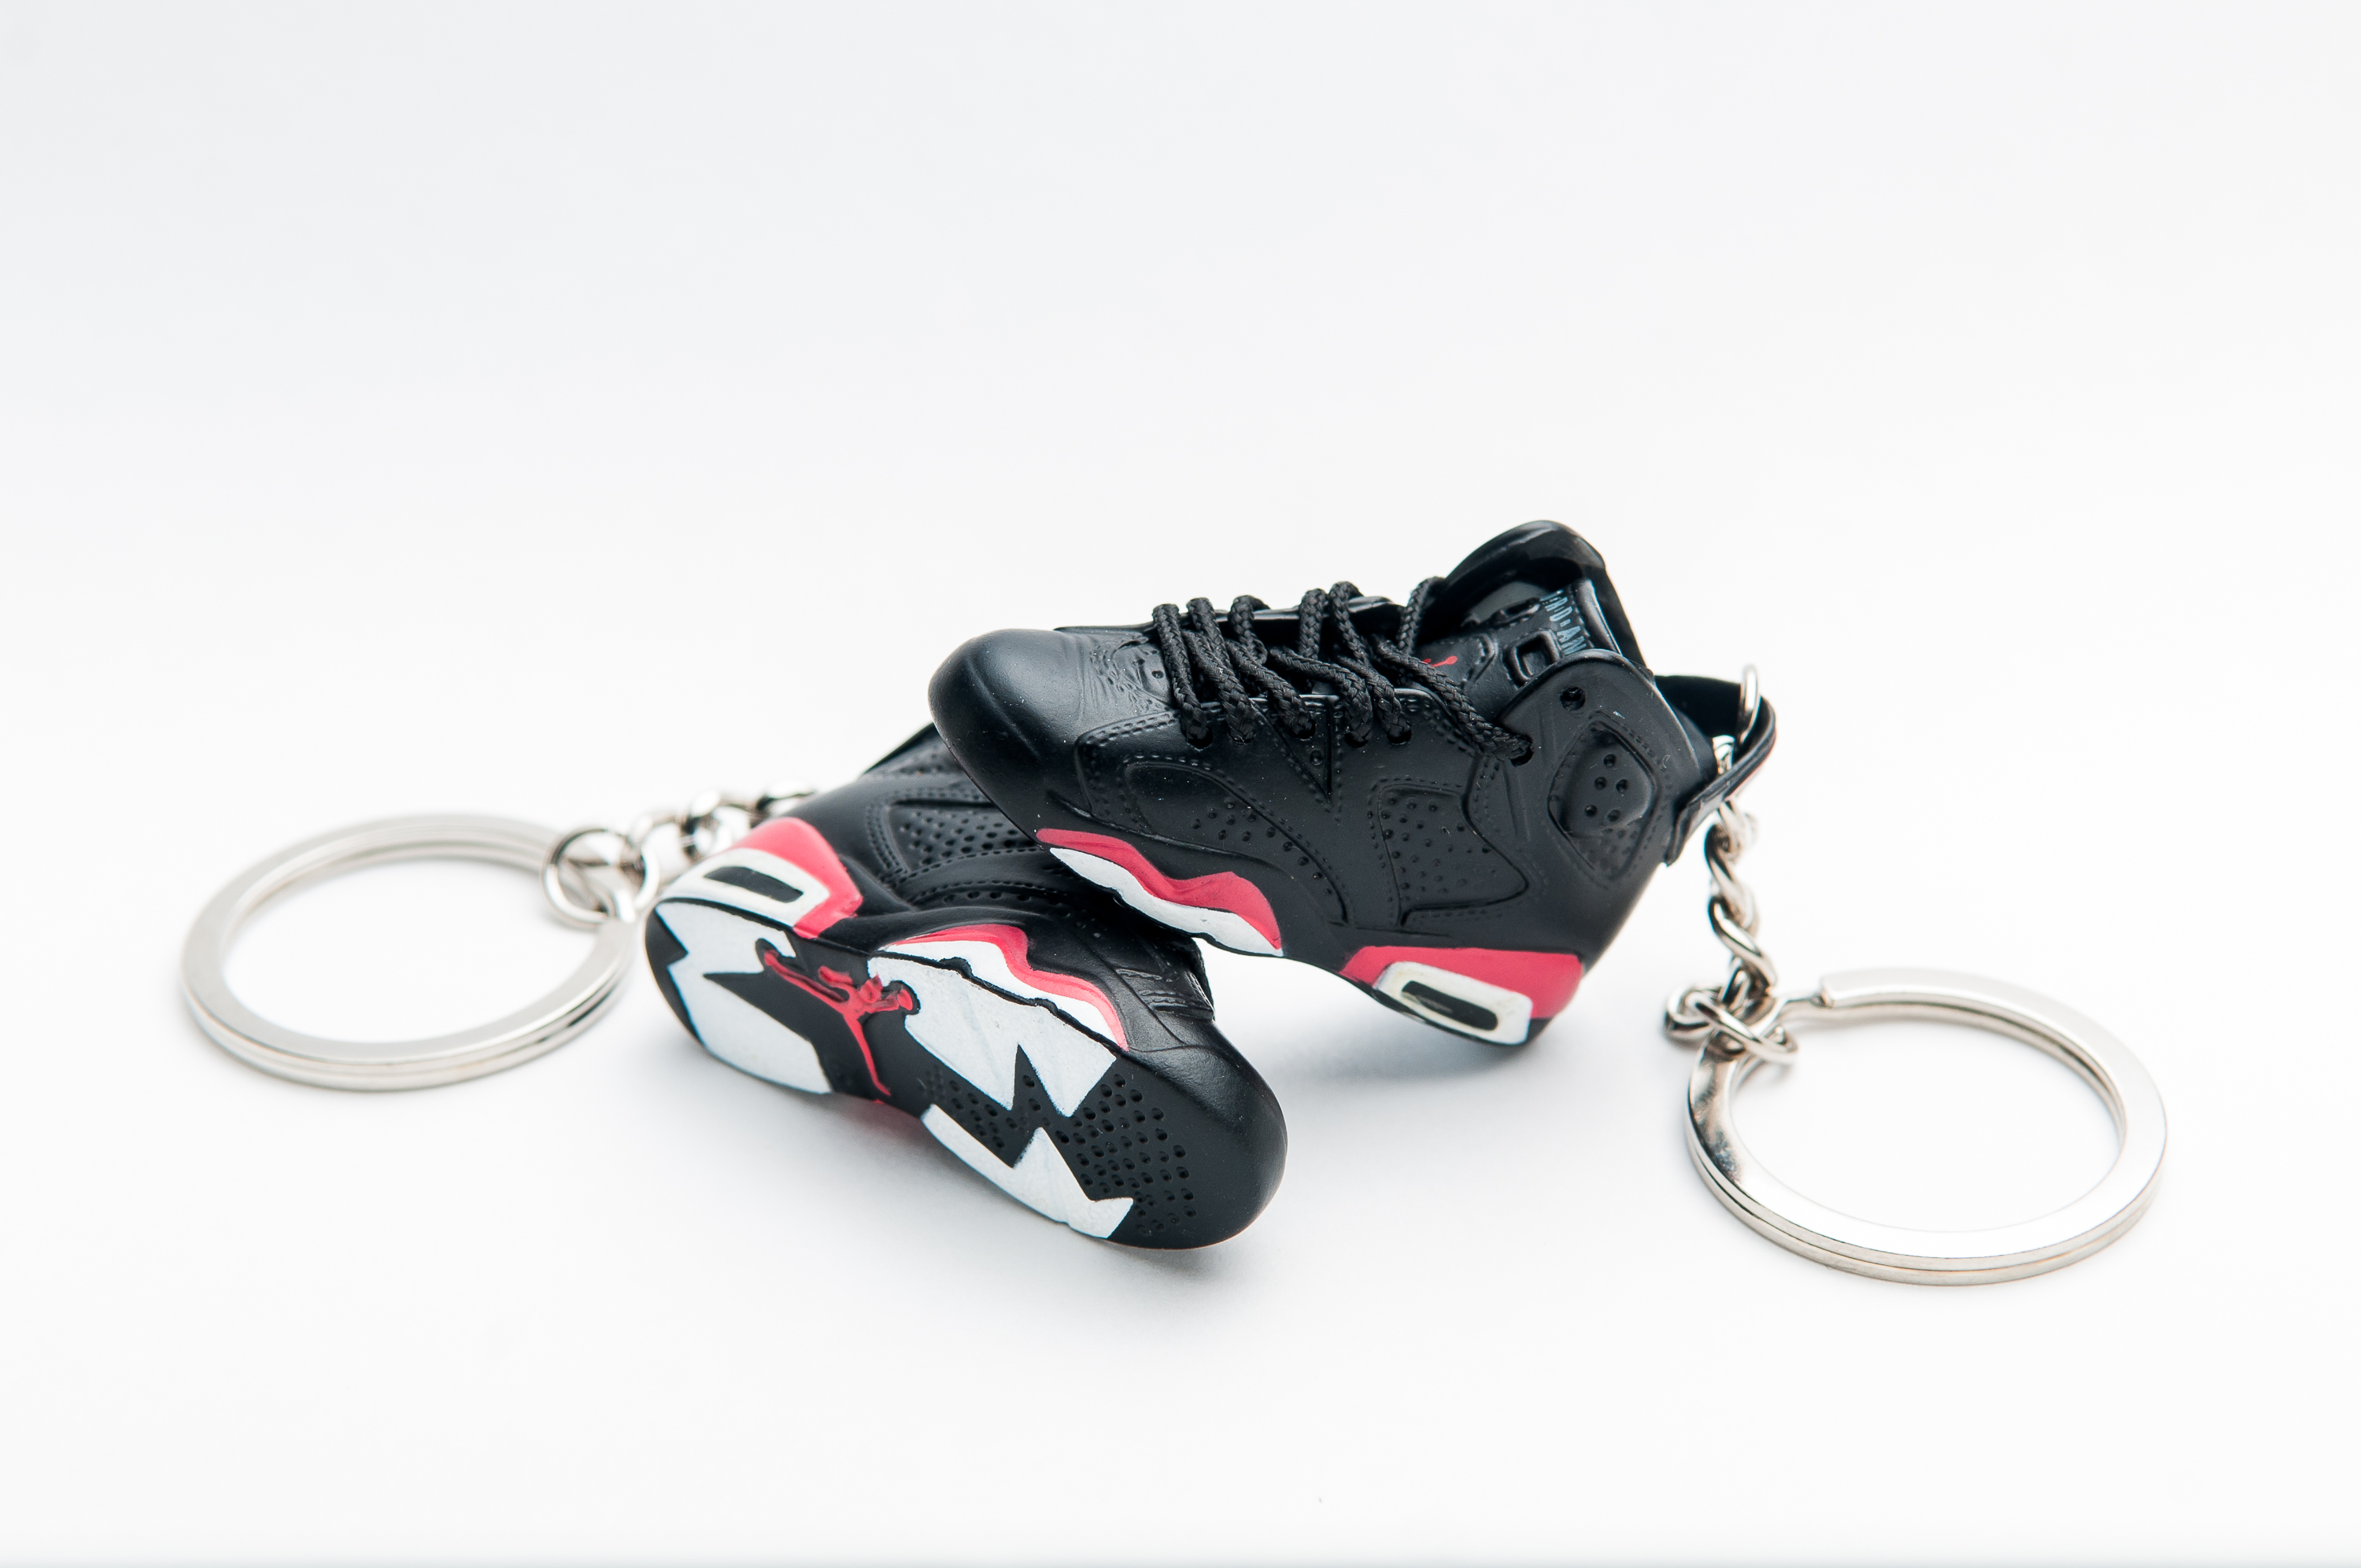 b0c1a7734f4 3D Nike Air Jordan 6 Retro Black Red | Kool keyringsKool keyrings